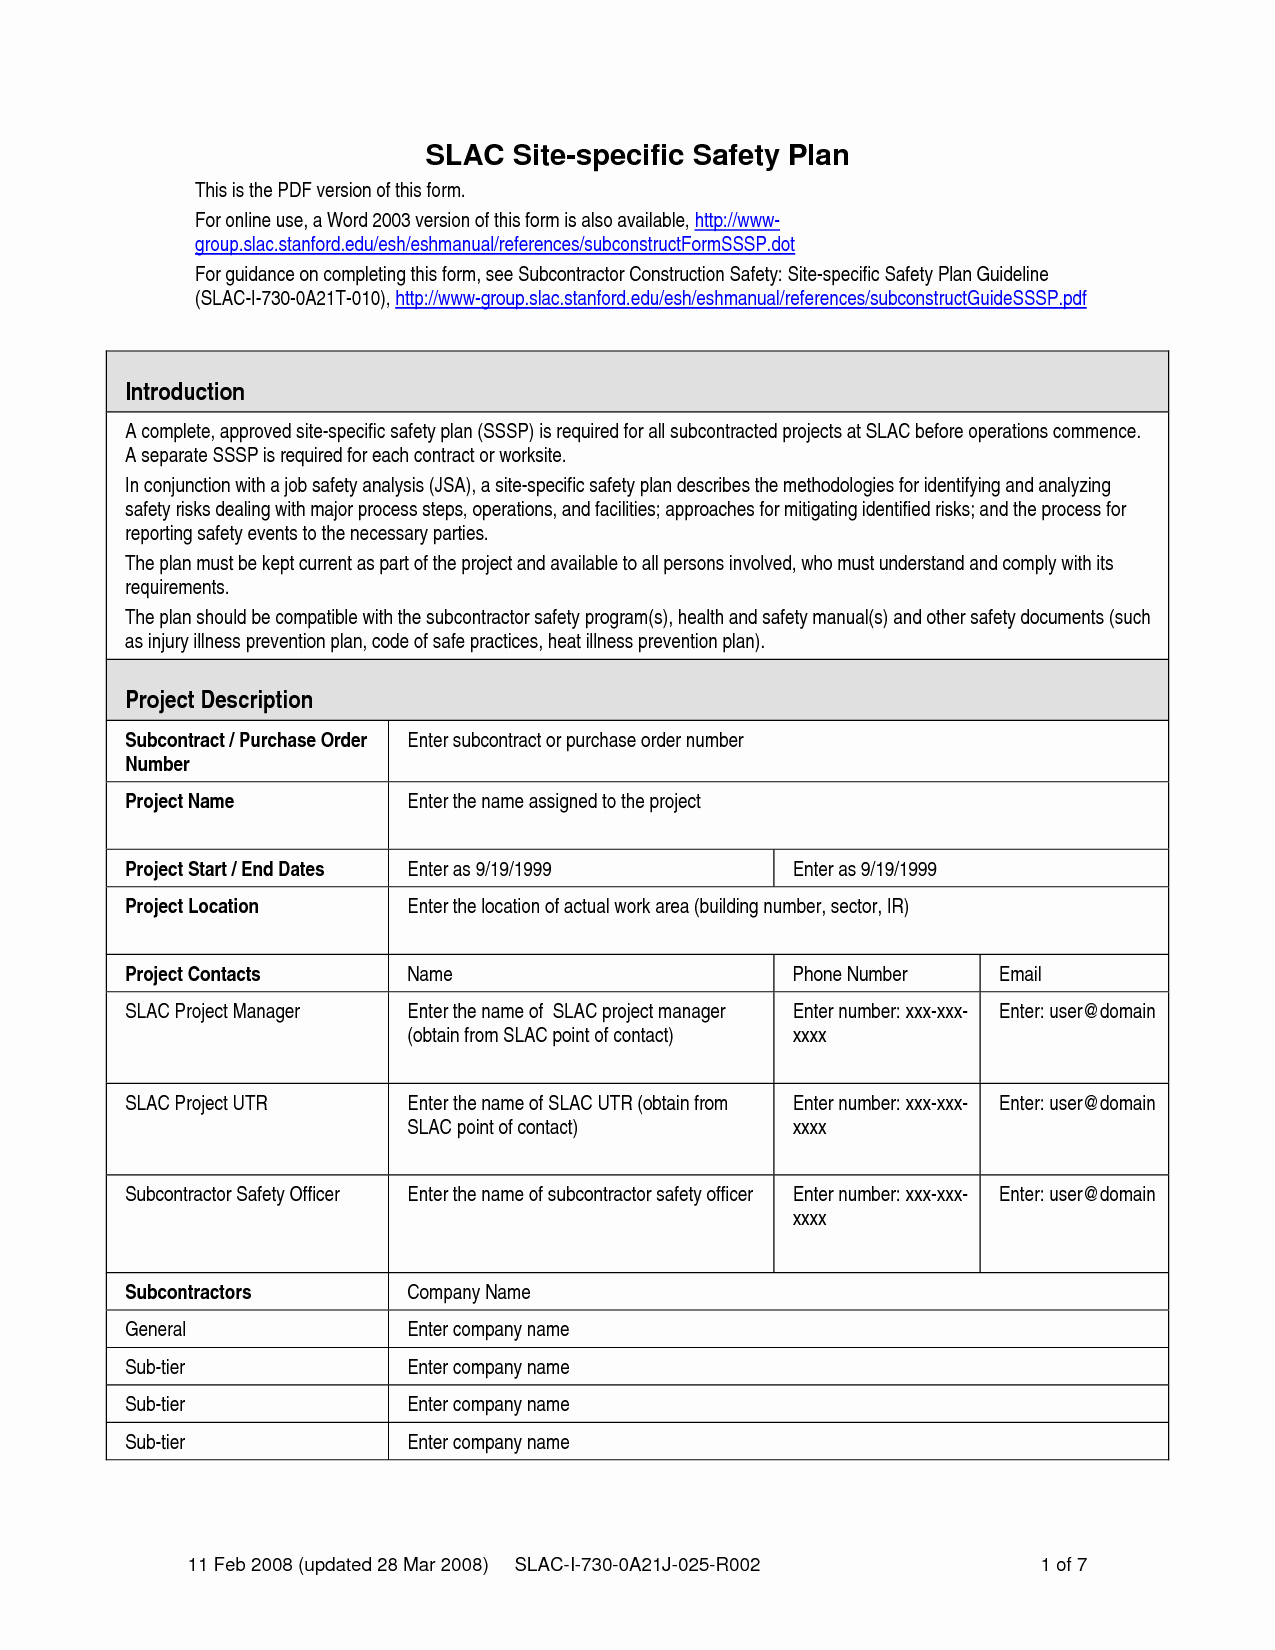 Suicide Safety Plan Template Beautiful Safety Plan Template